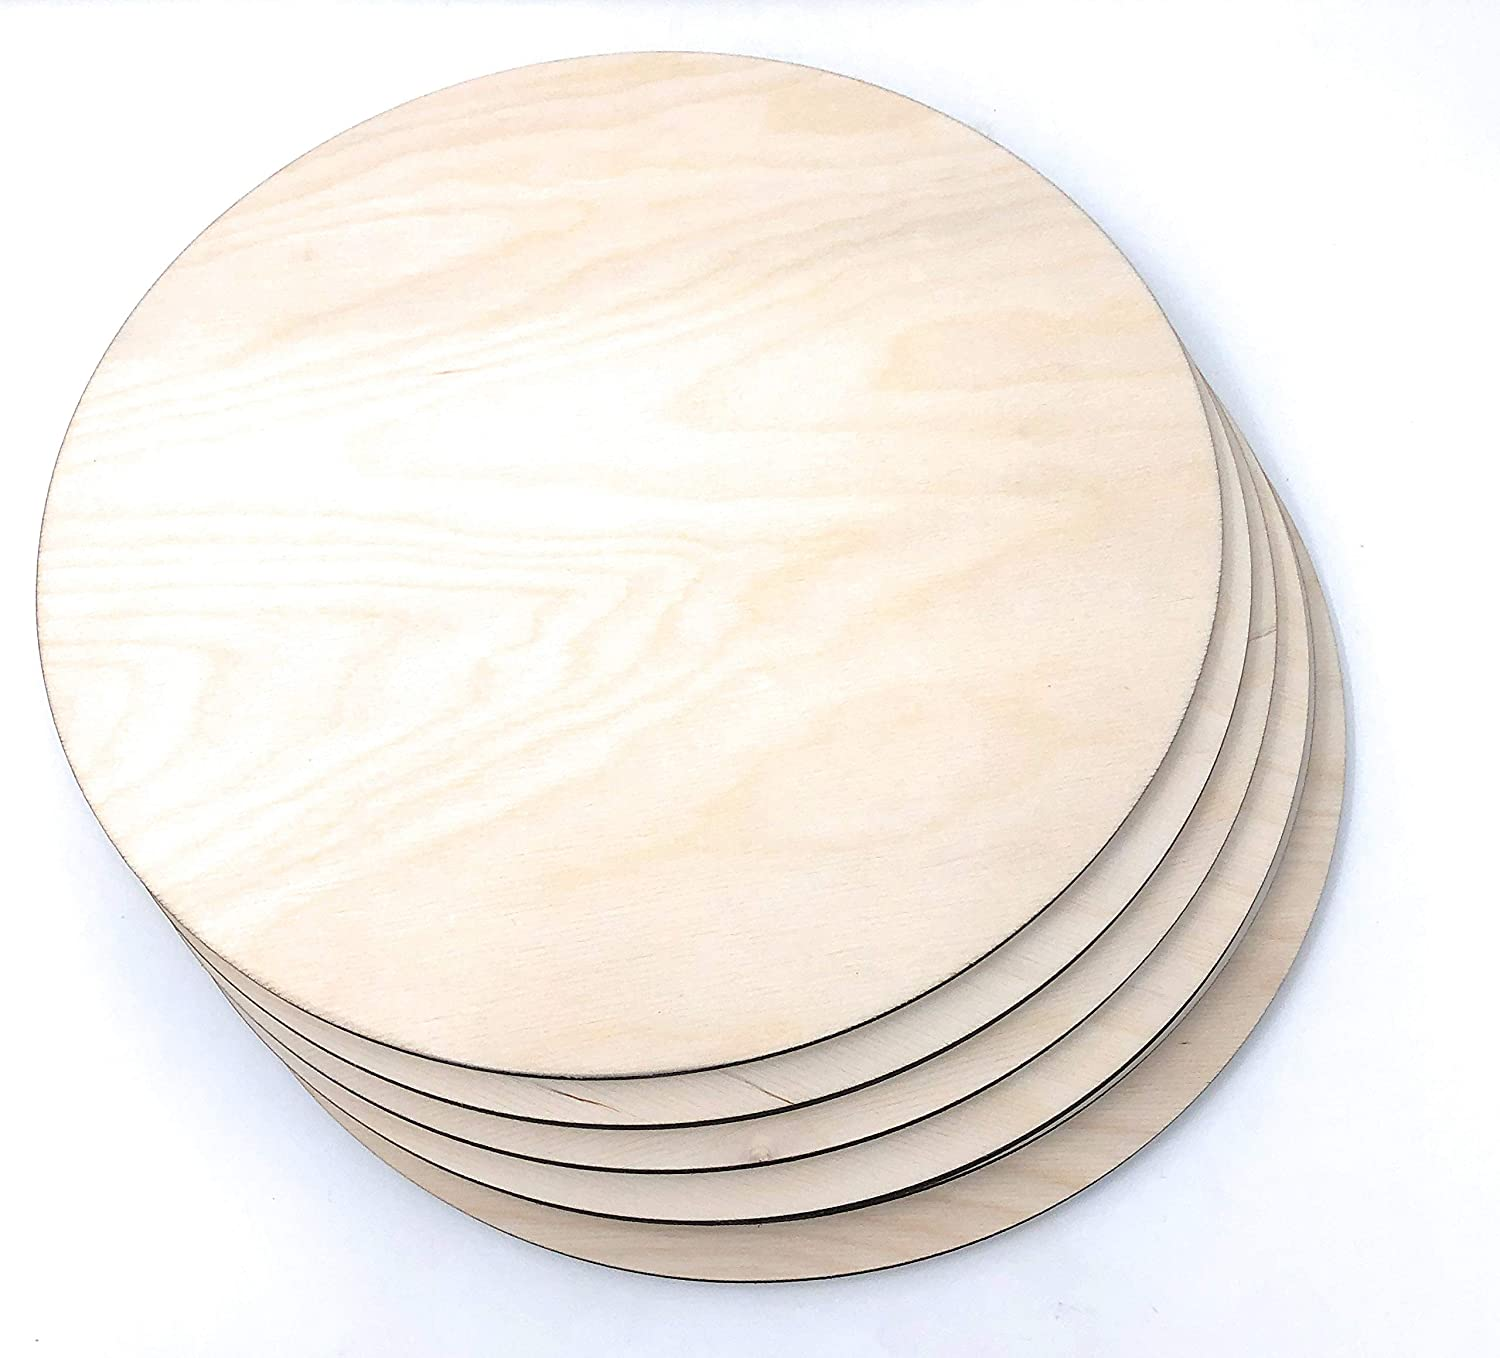 Gocutouts 9 Wooden Circle Cutouts Unfinished 1//4 Baltic Birch Package of 6 9 1//4 Package of 6